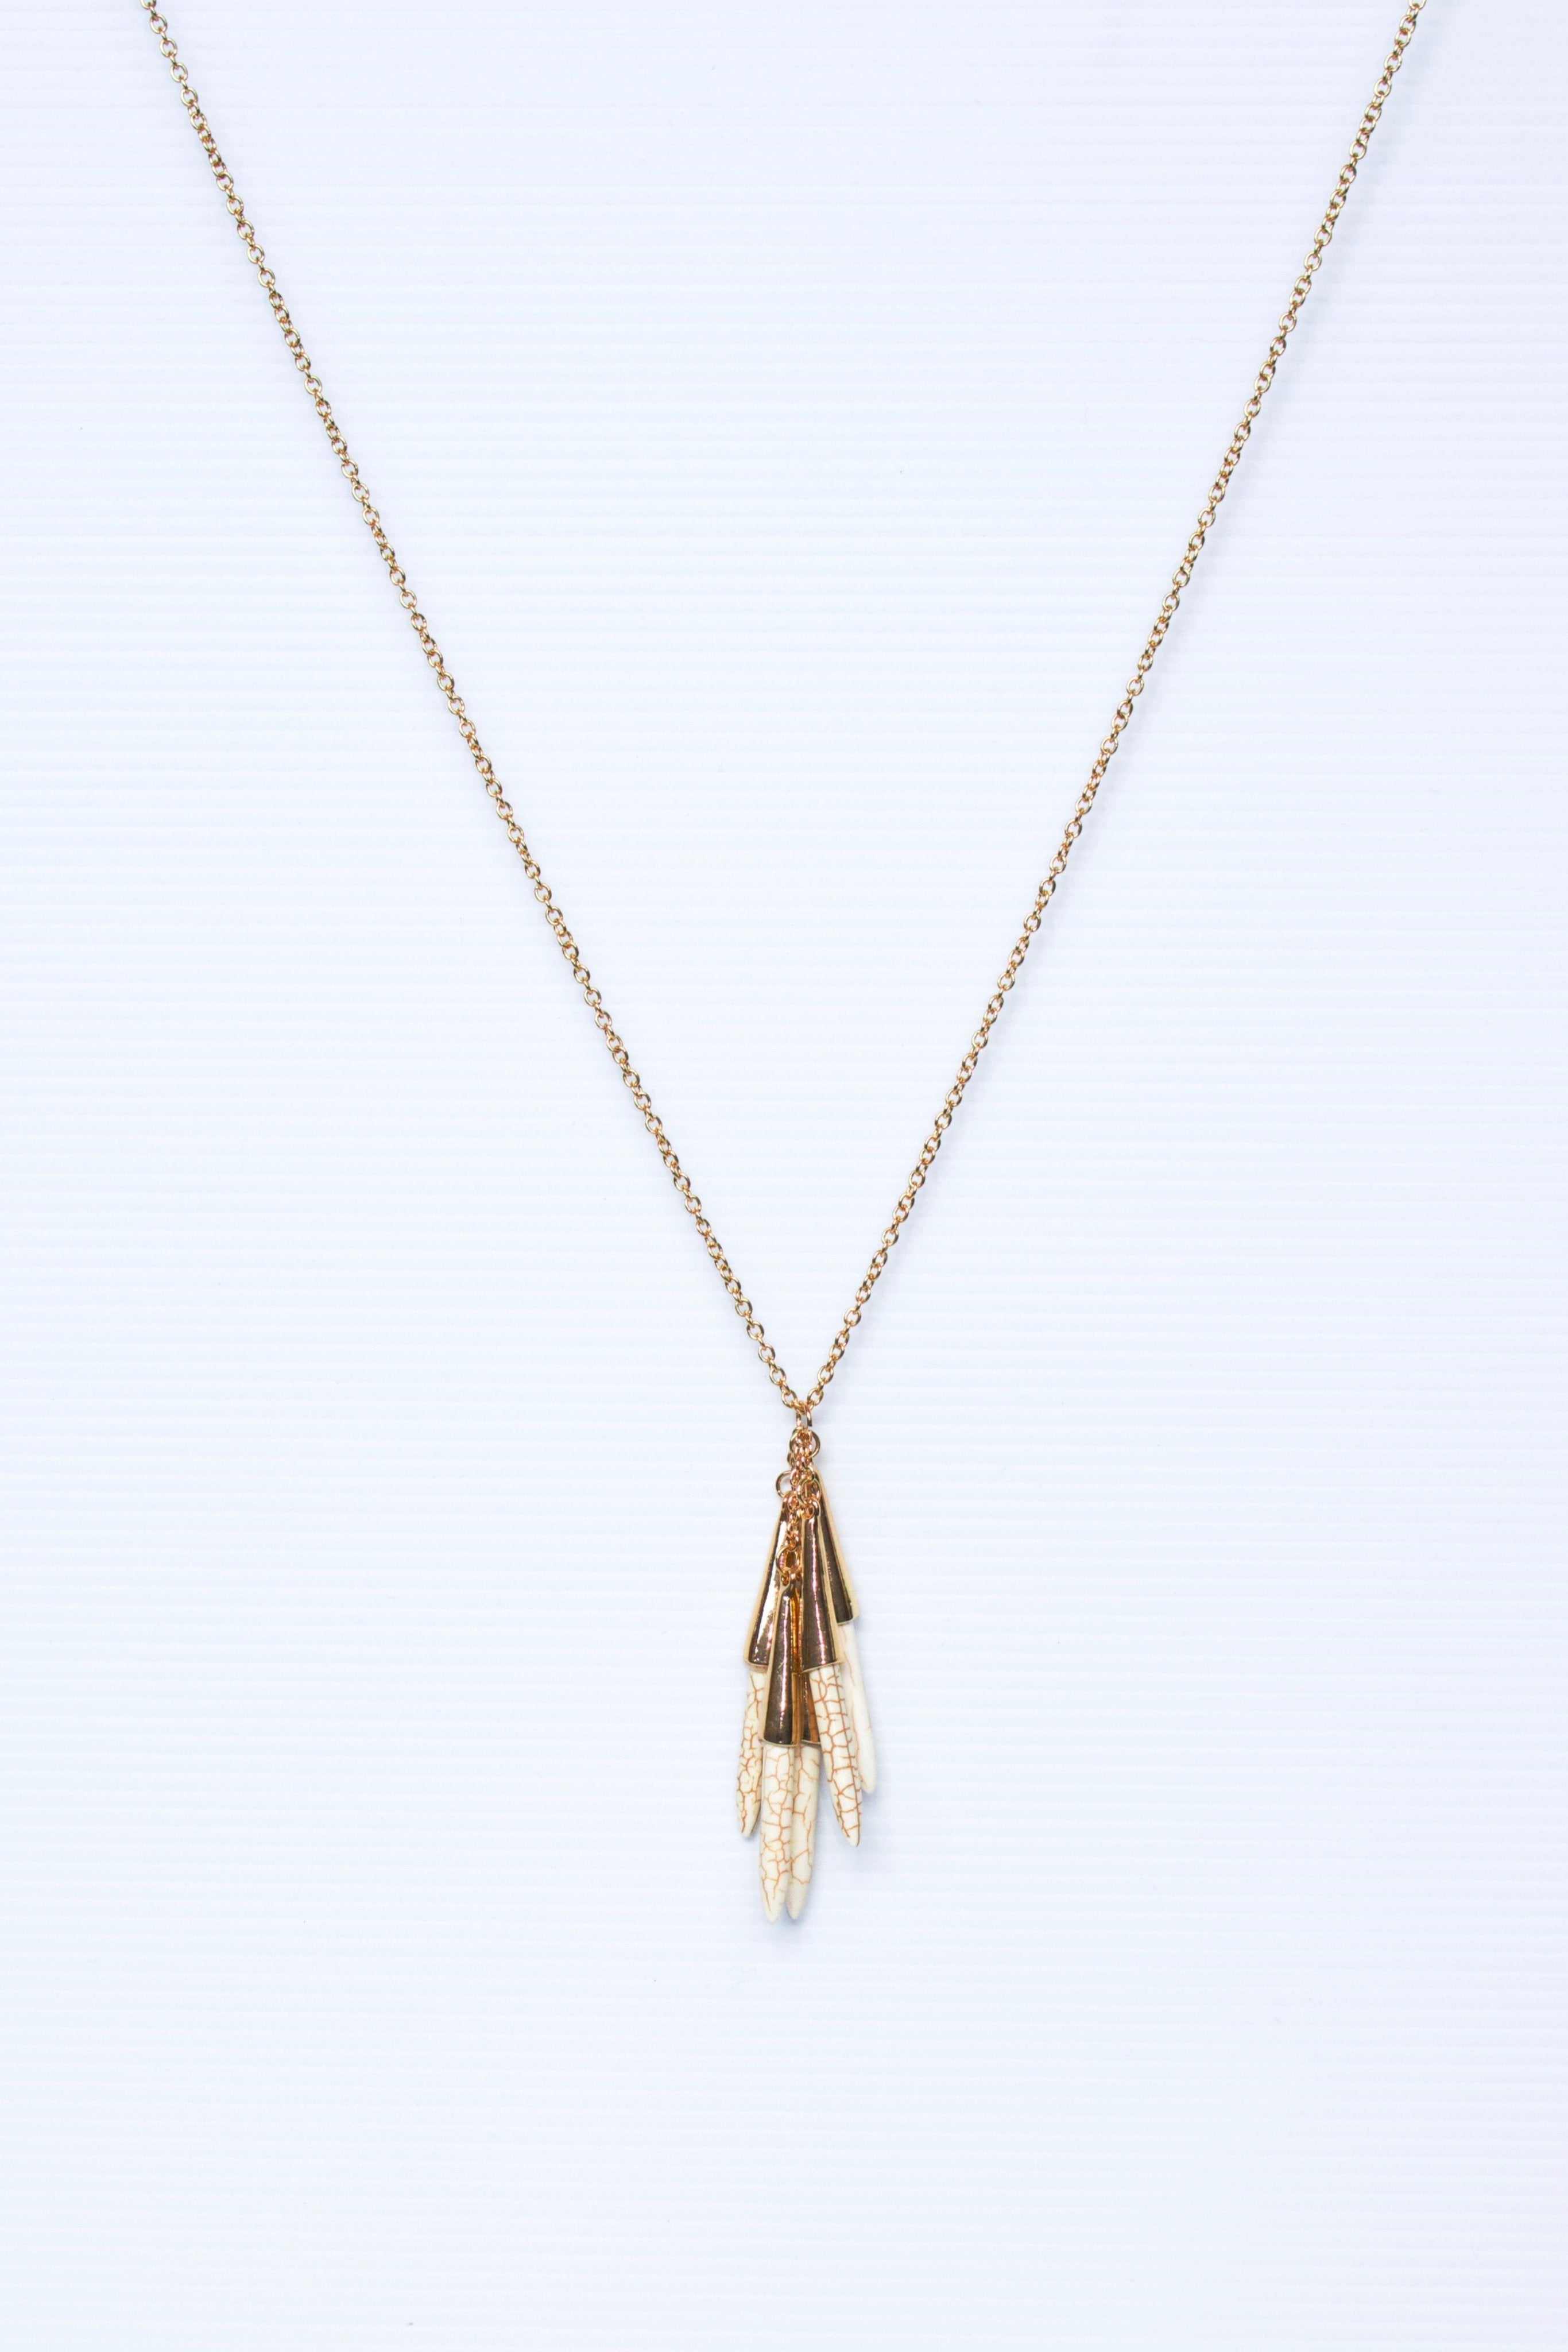 LONG GOLD CHAIN NECKLACE WITH HOWLITE STONES - TALONS NECKLACE